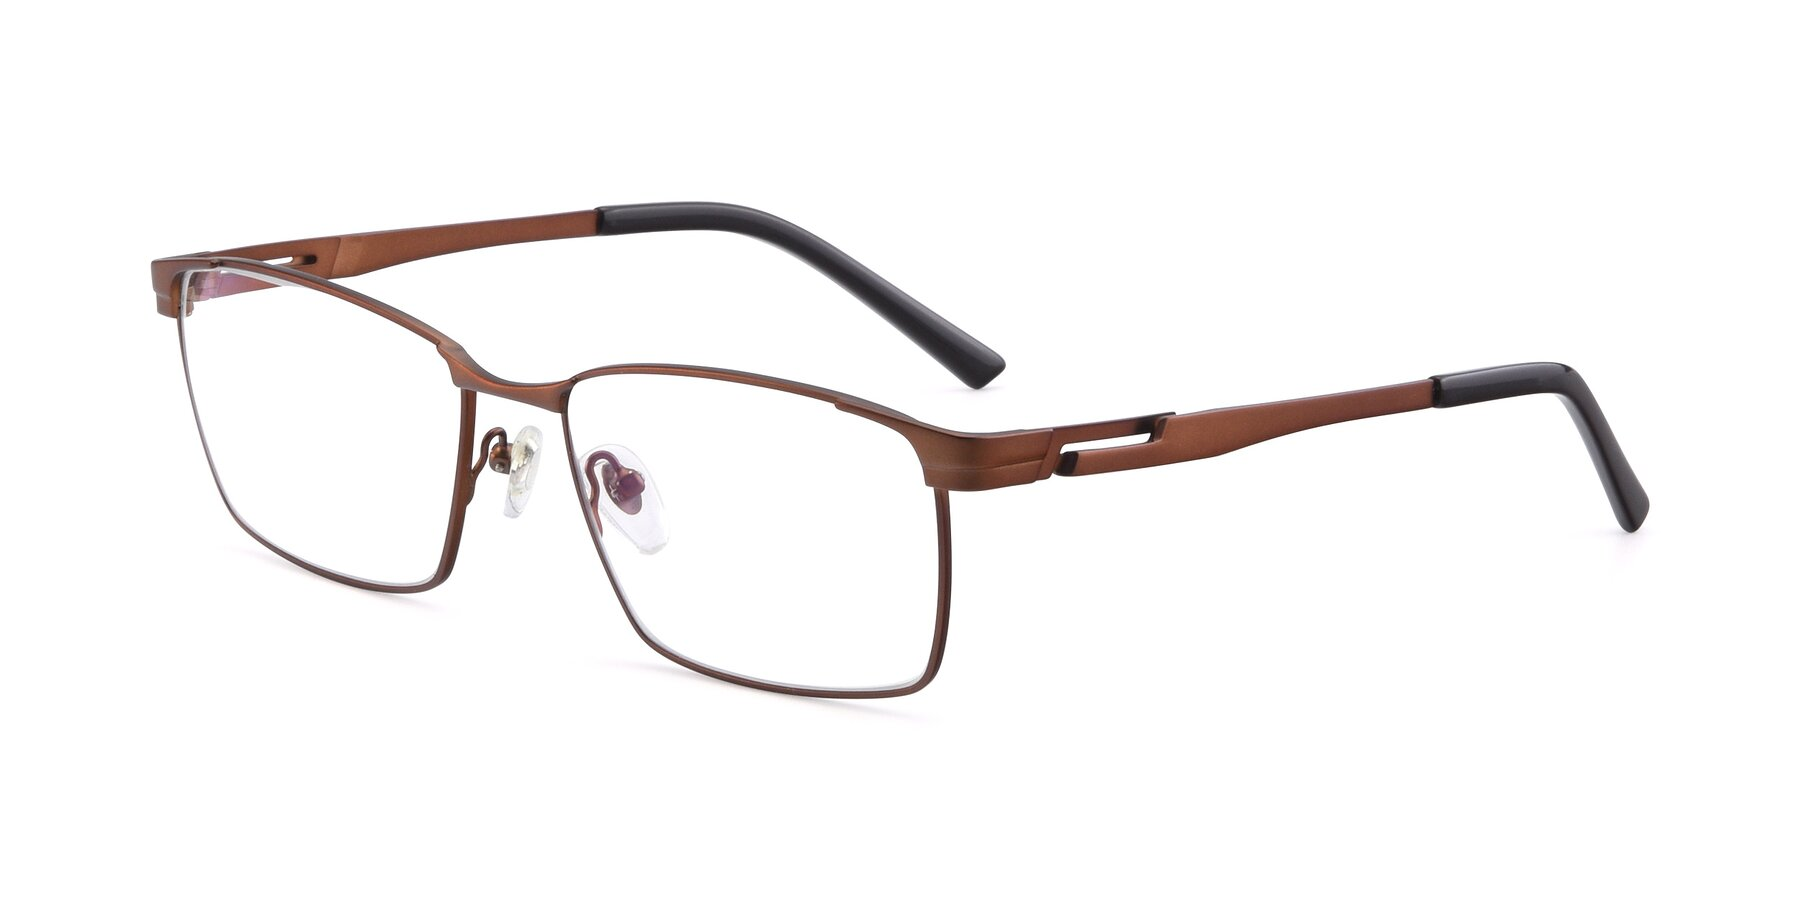 Angle of 19021 in Brown with Clear Eyeglass Lenses